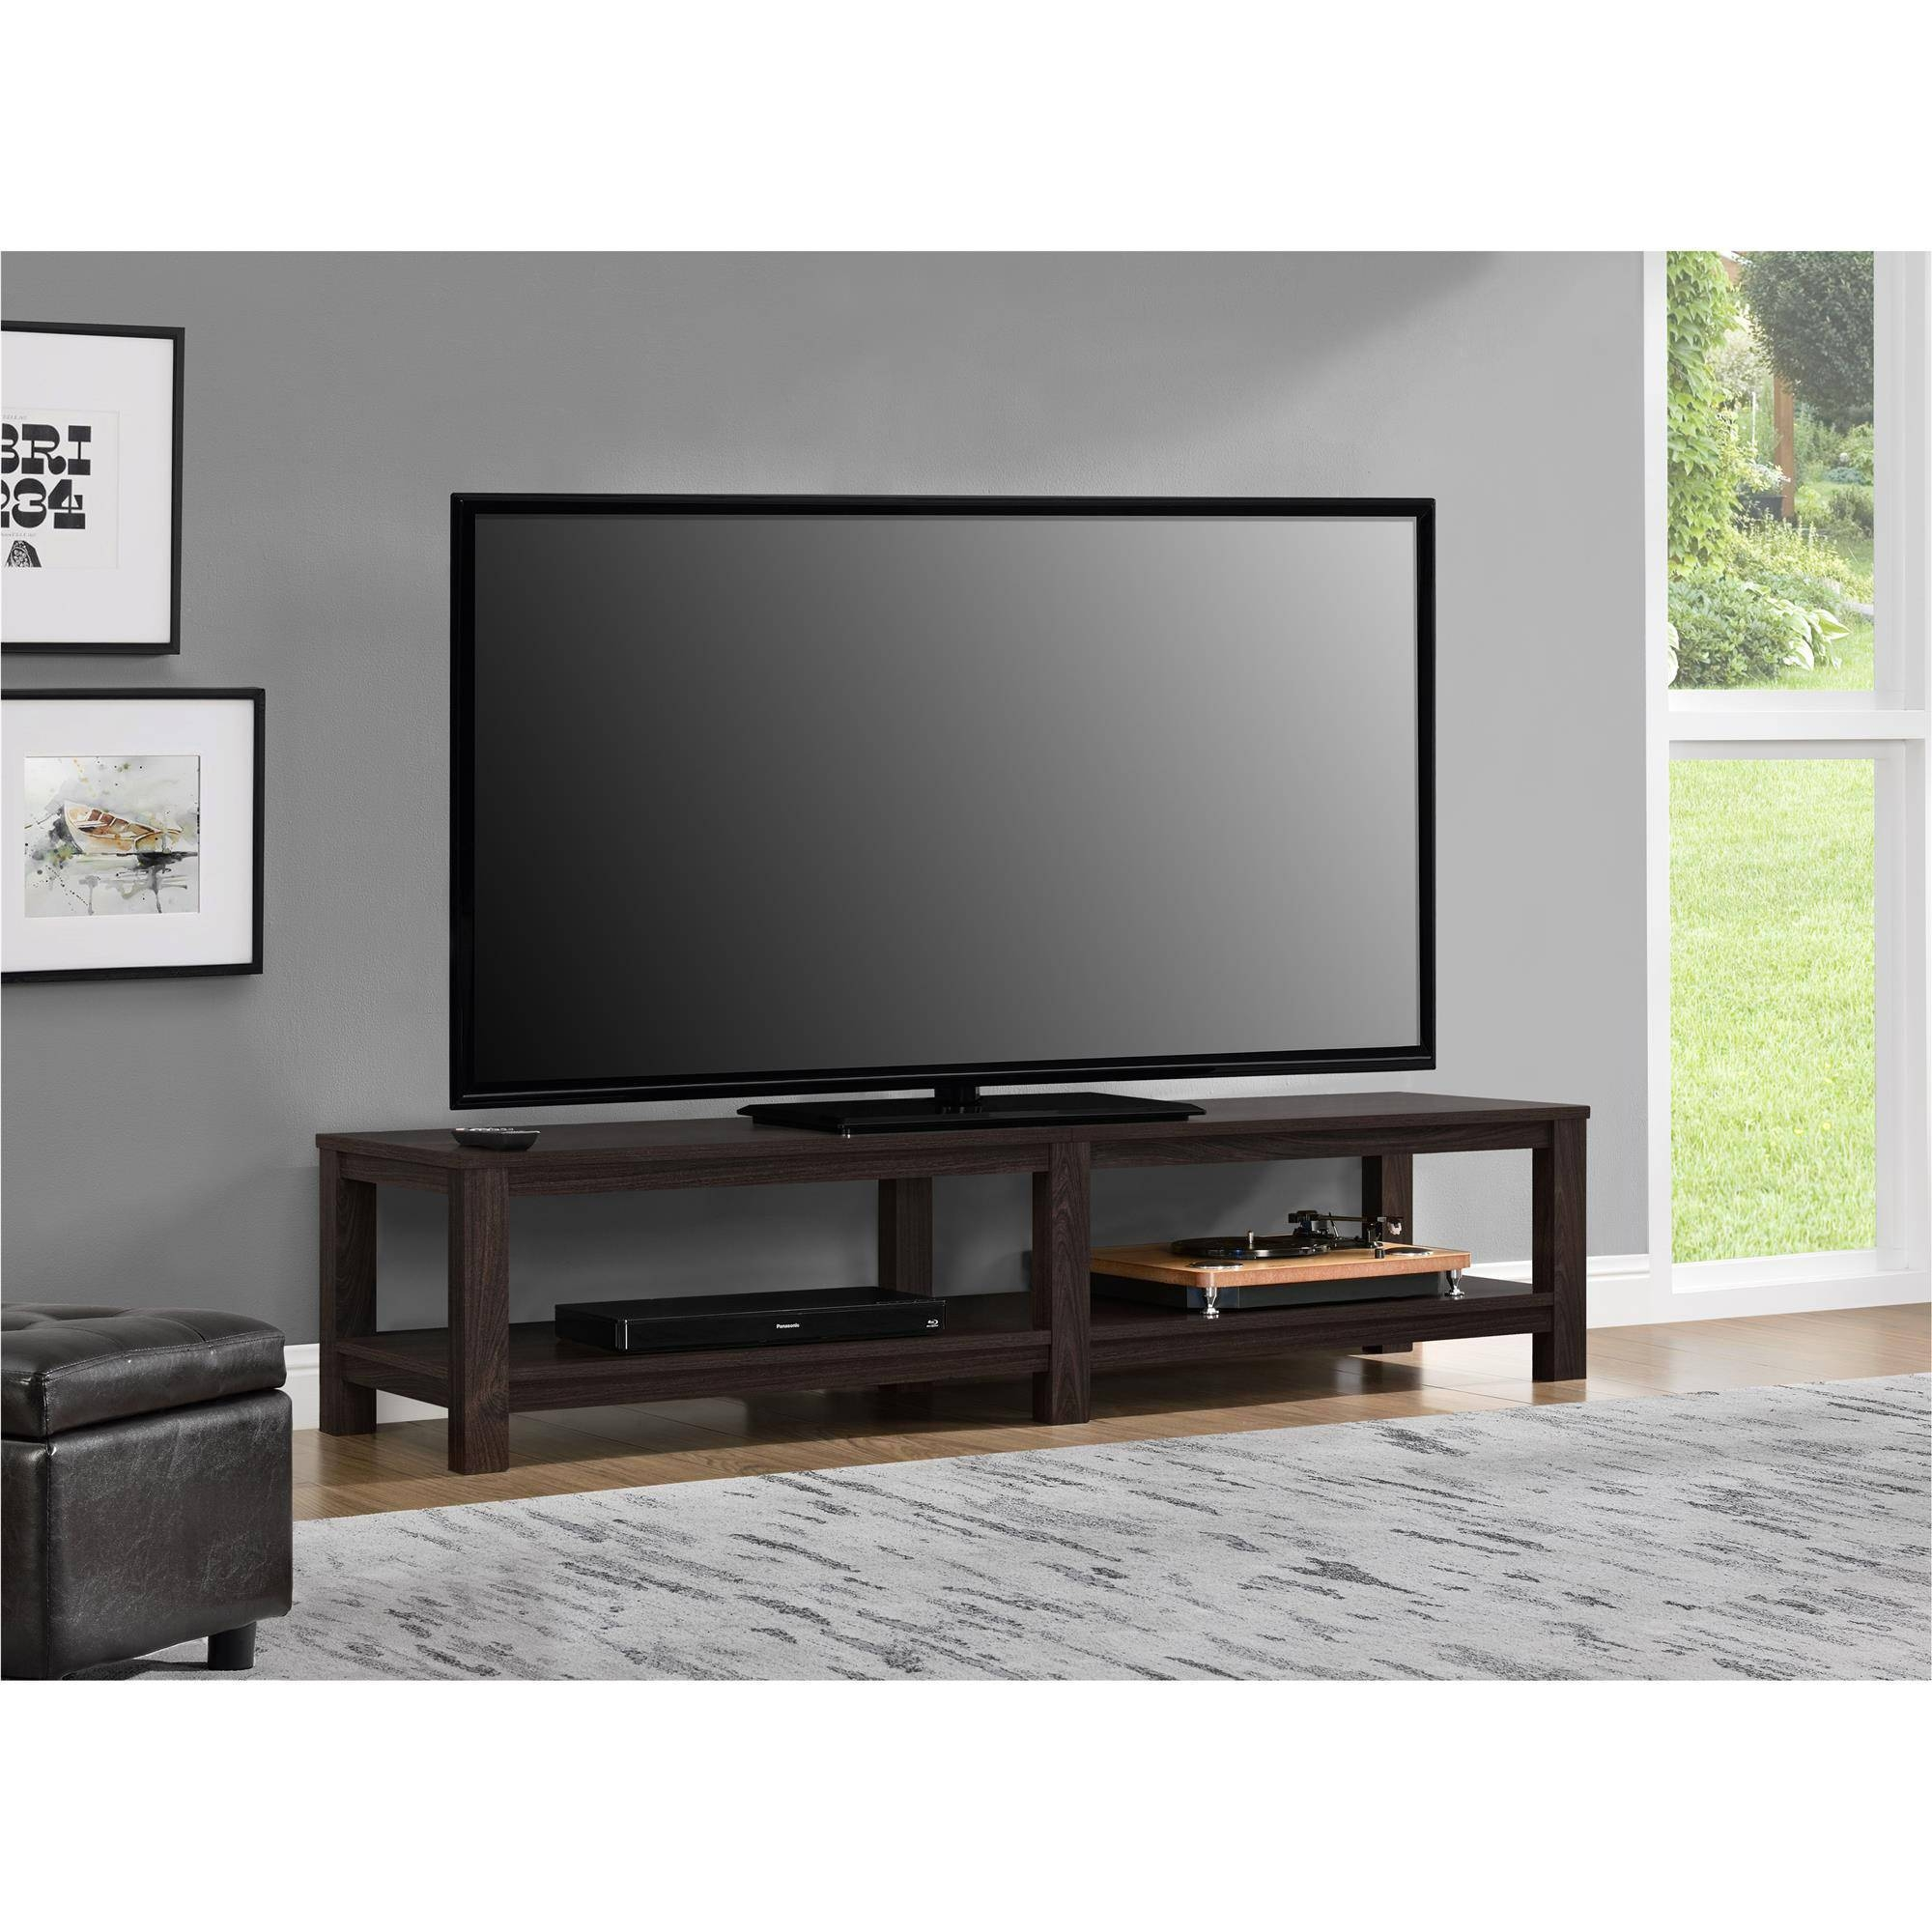 Tv Stands & Entertainment Centers - Walmart throughout Tv Stands With Baskets (Image 14 of 15)